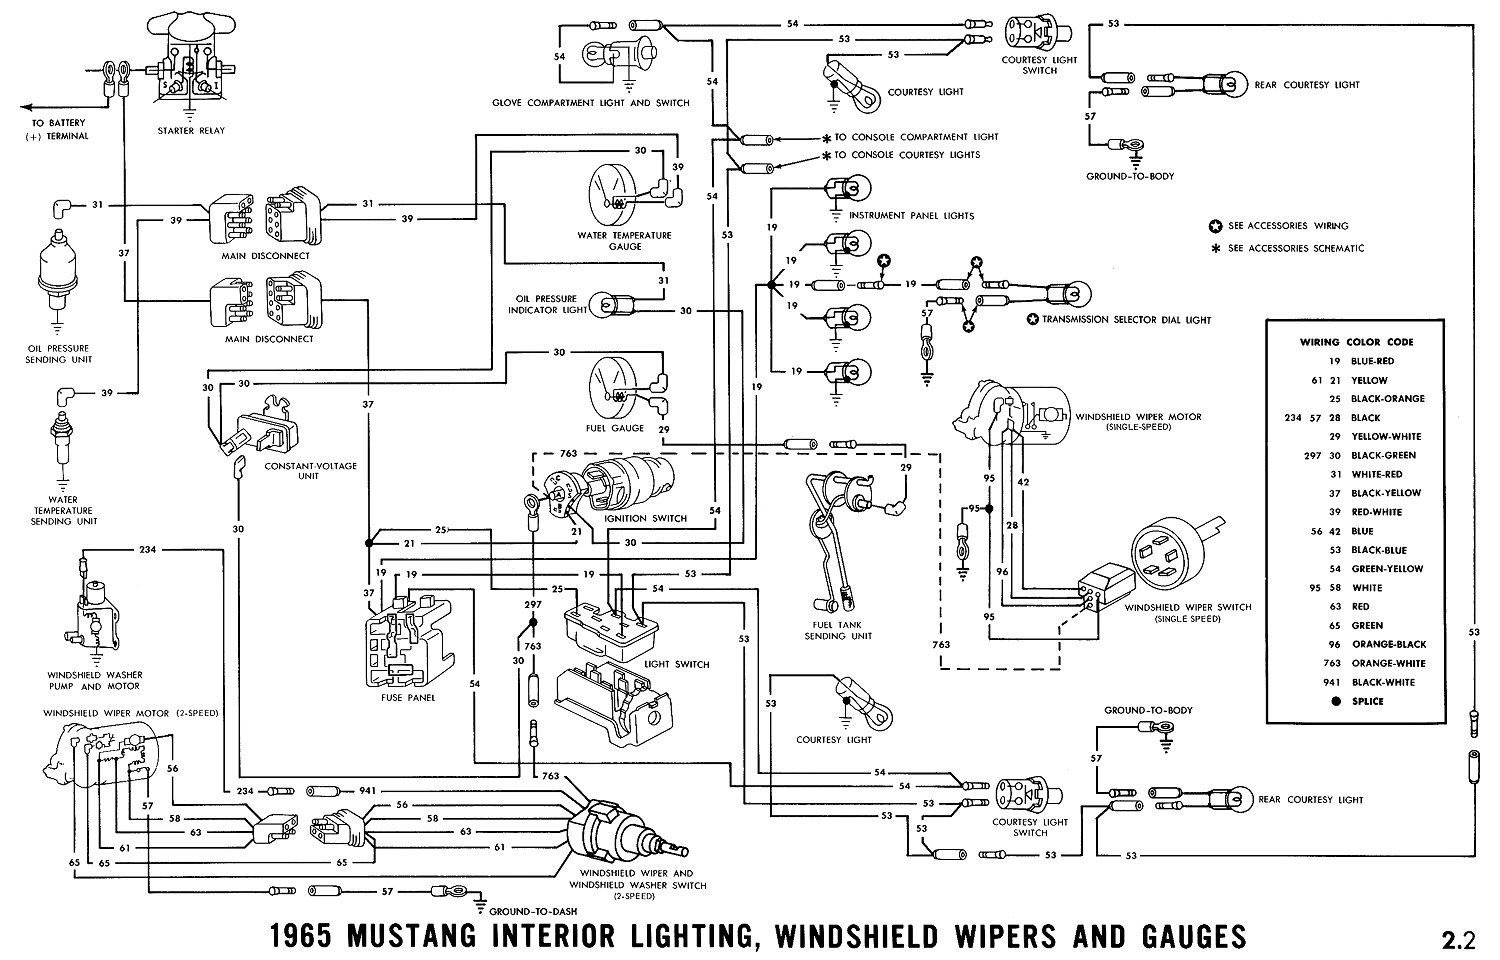 1965g 1965 mustang wiring diagrams average joe restoration 1967 mustang wiring diagram at alyssarenee.co